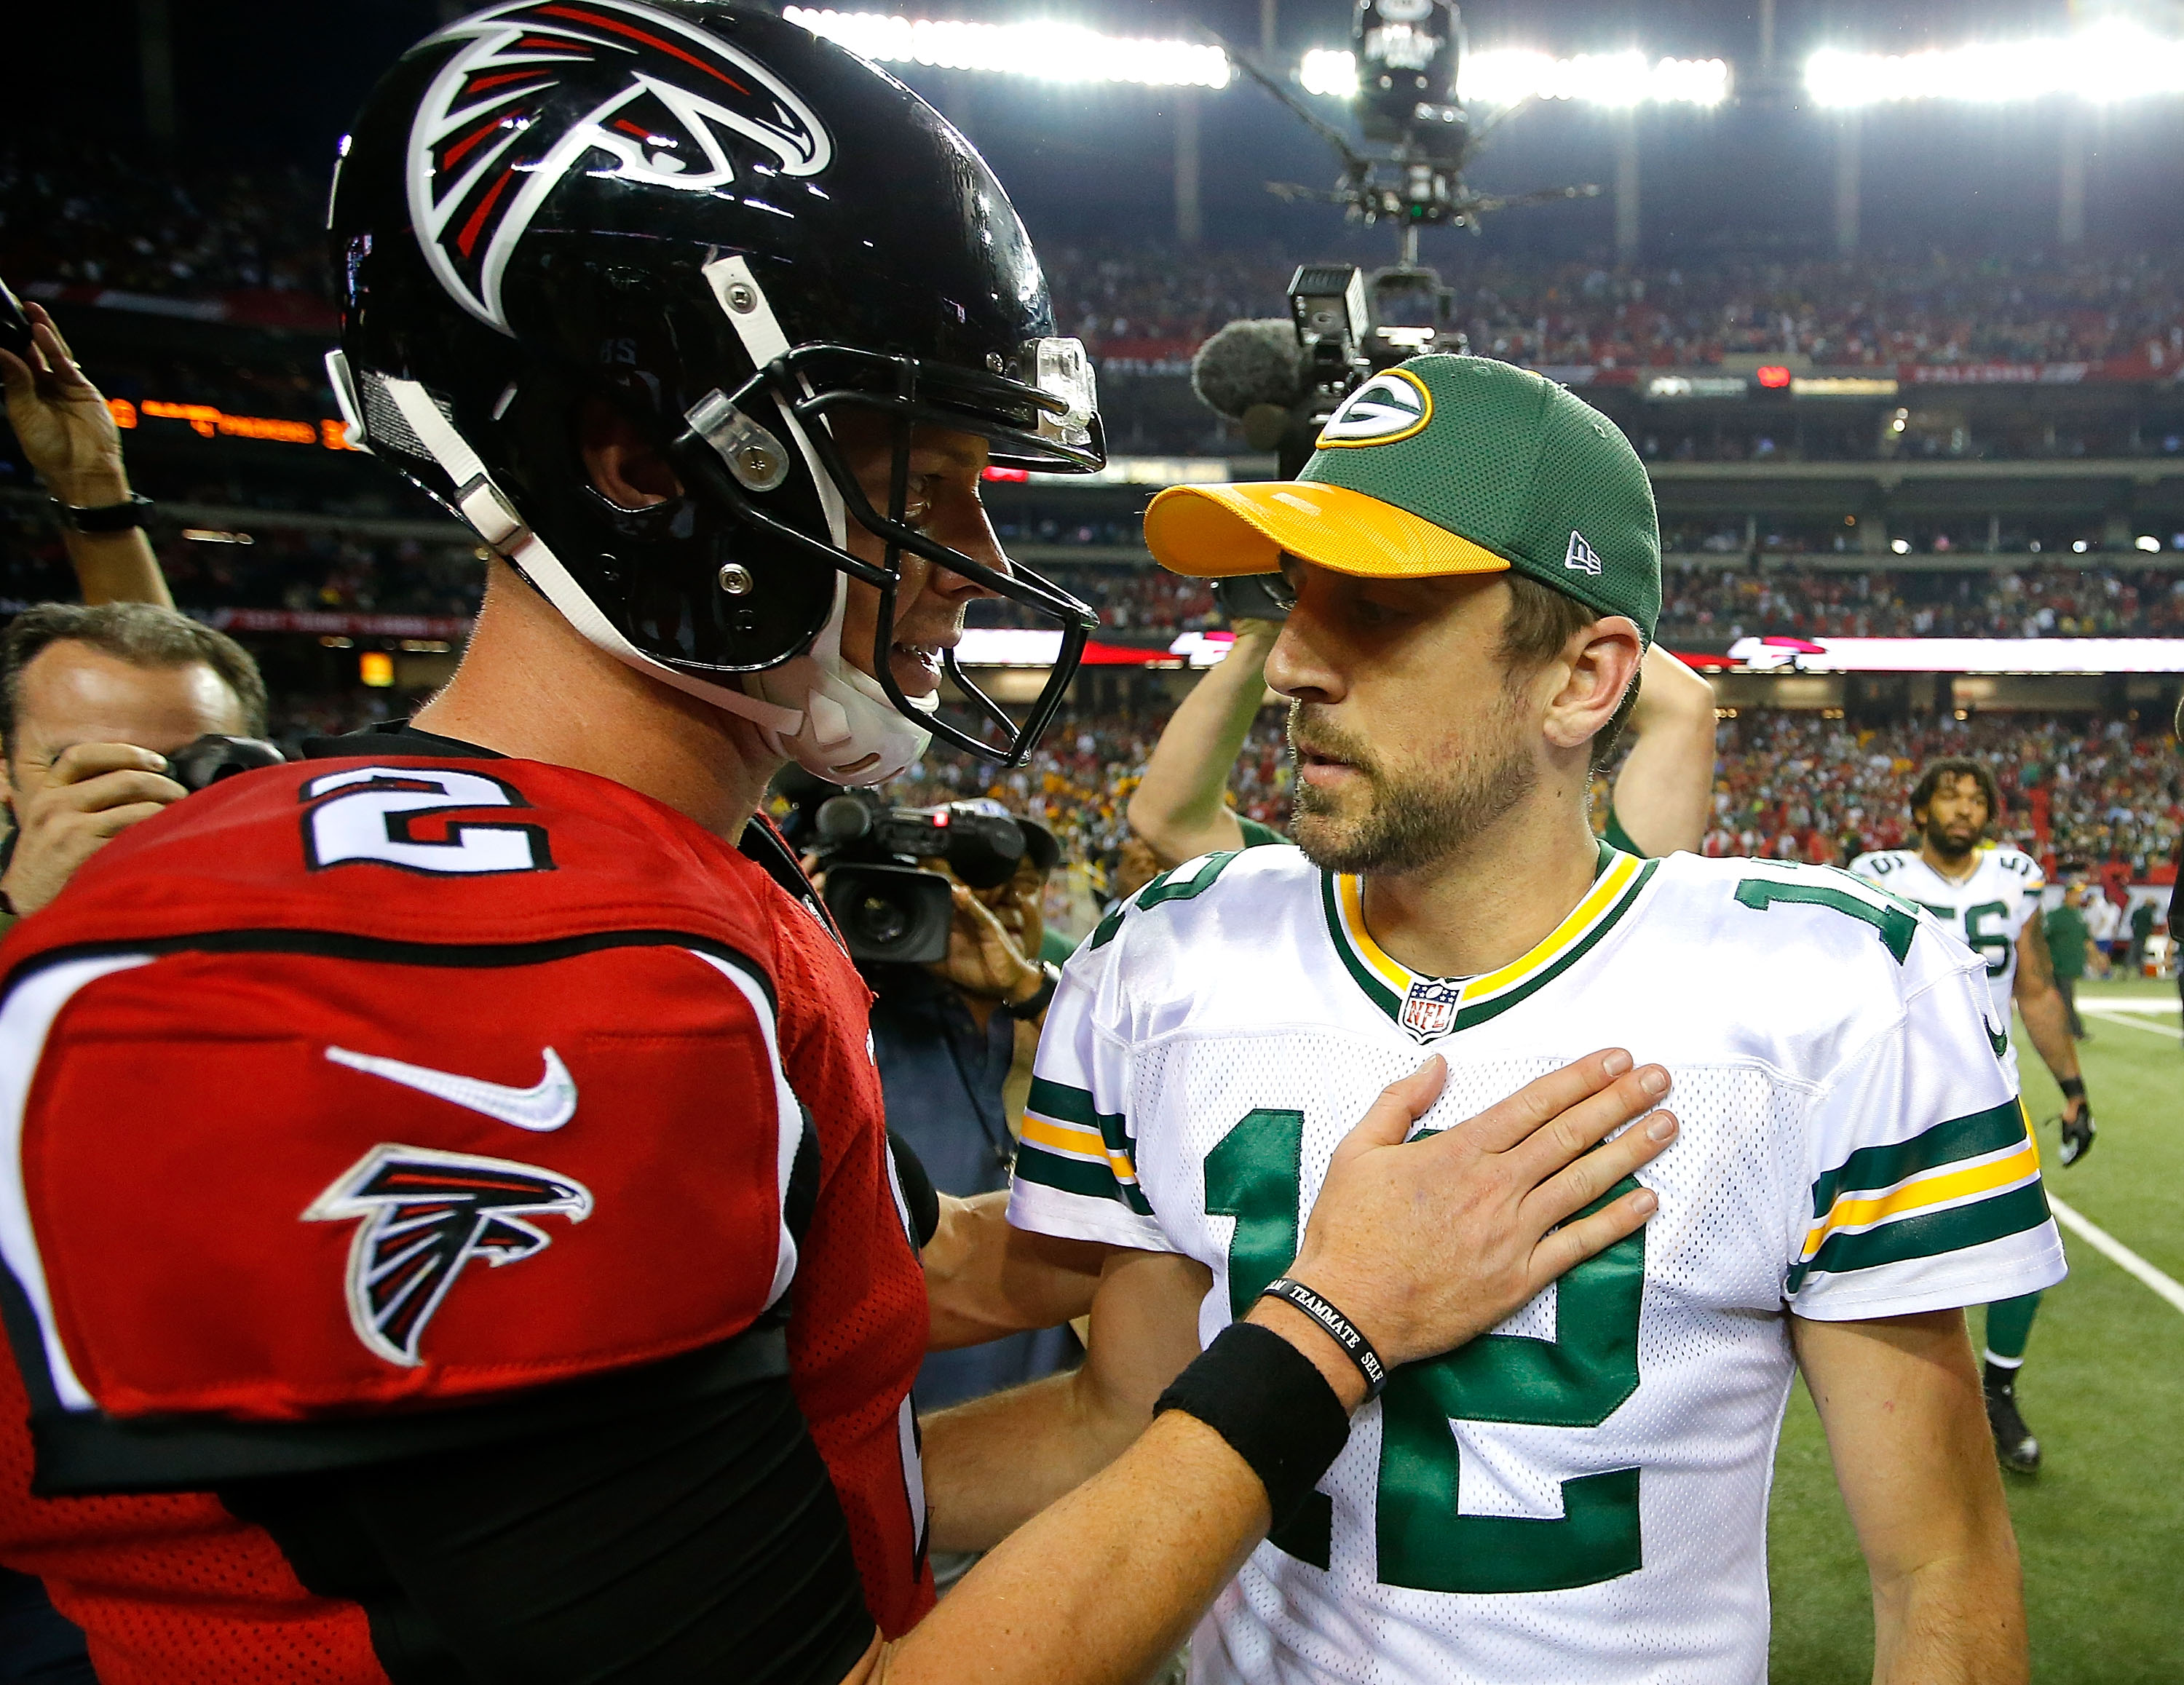 Matt Ryan of the Atlanta Falcons (left) converses with Aaron Rodgers of the Green Bay Packers after Atlanta's 33-32 win at Georgia Dome on October 30, 2016; the QBs will meet again in this week's NFC Championship. (Getty Images)